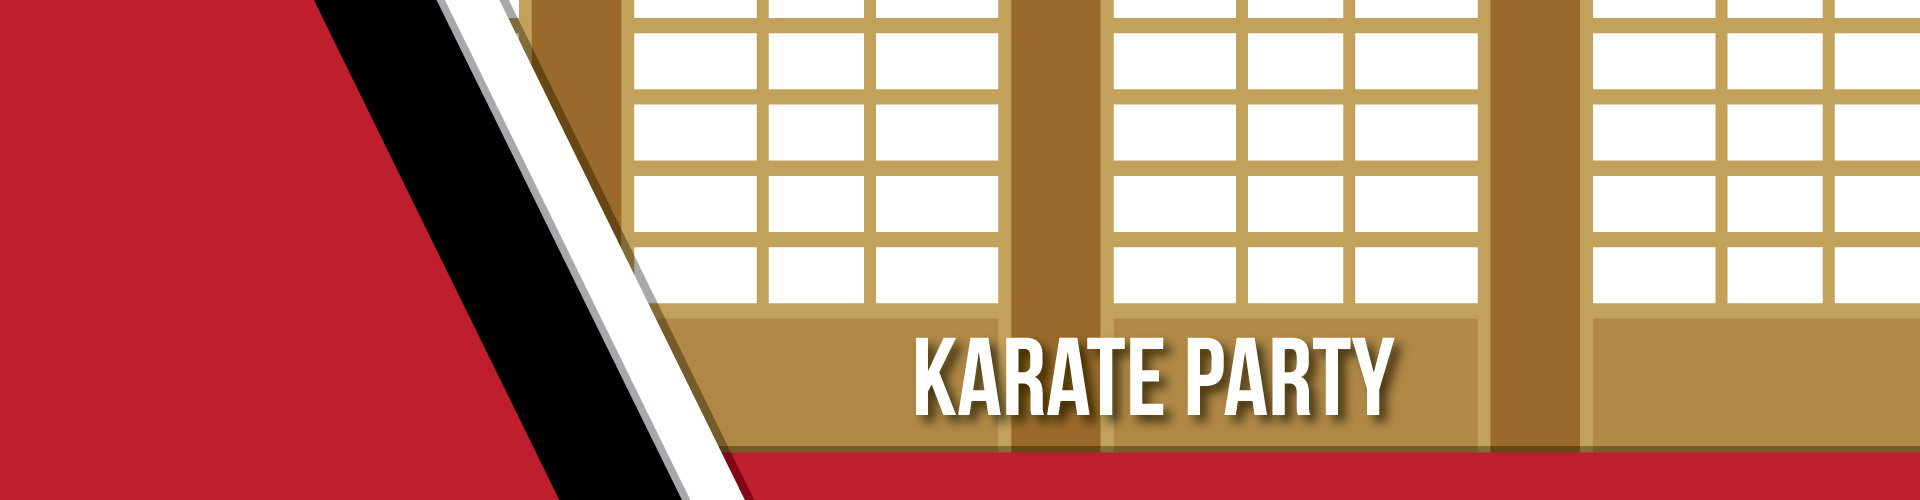 Karate-Party